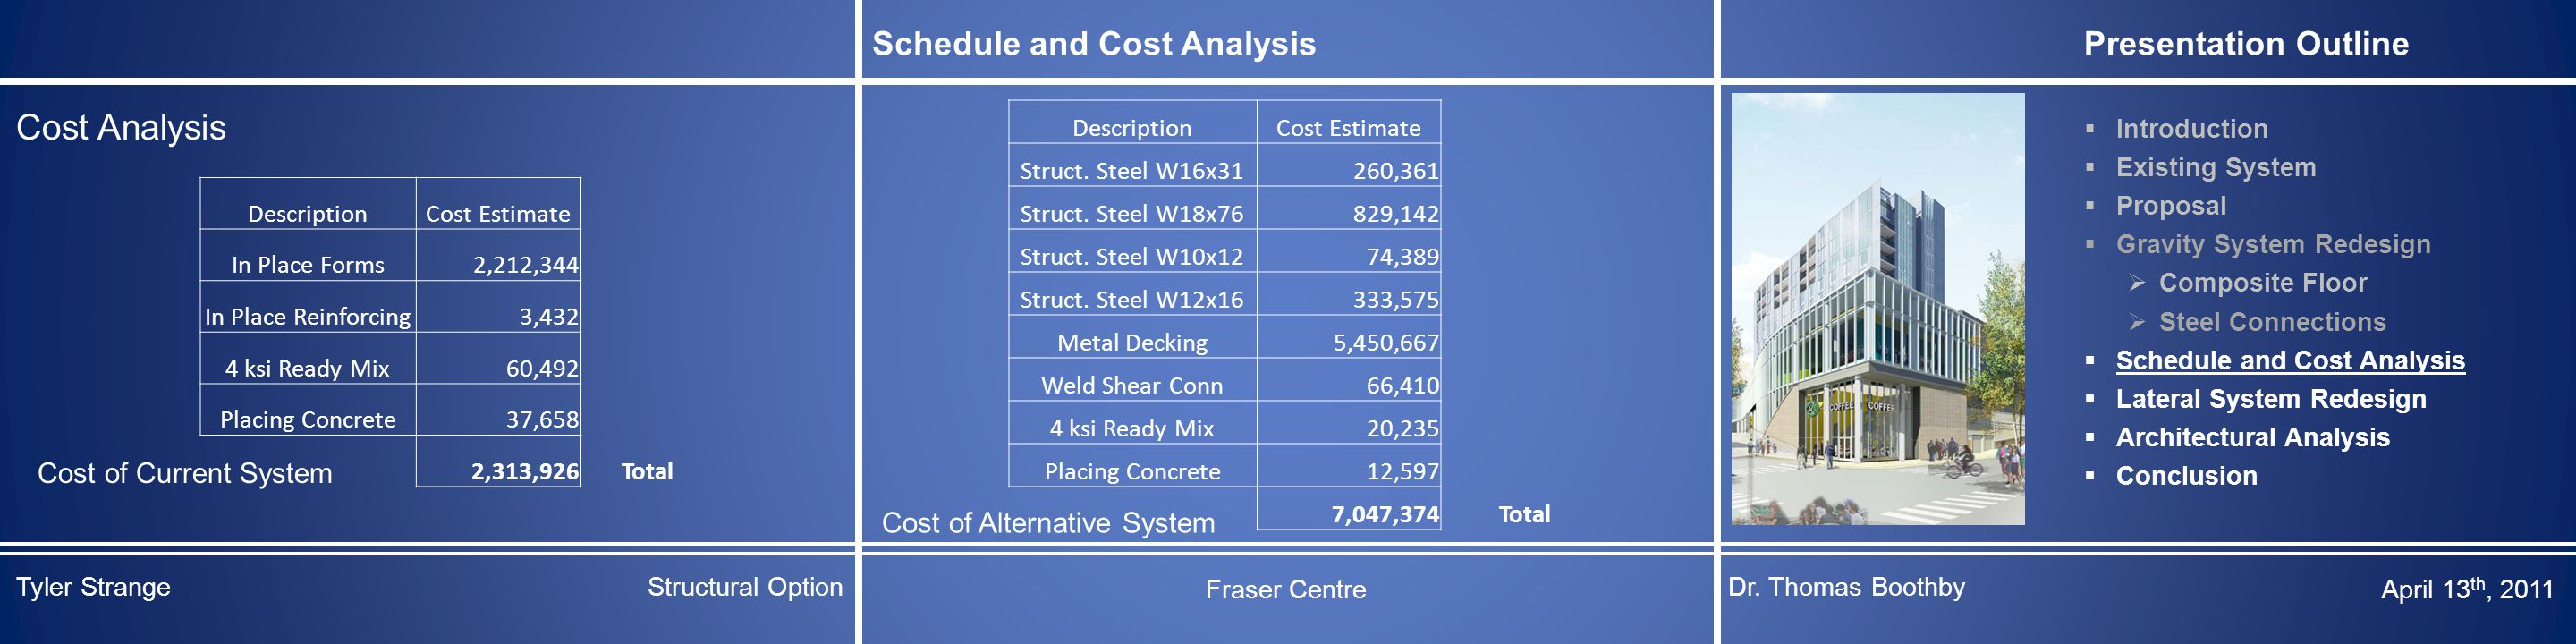 Schedule and Cost Analysis Presentation Outline  Introduction  Existing System  Proposal  Gravity System Redesign  Composite Floor  Steel Connections  Schedule and Cost Analysis  Lateral System Redesign  Architectural Analysis  Conclusion Cost Analysis Cost of Current System Cost of Alternative System DescriptionCost Estimate In Place Forms2,212,344 In Place Reinforcing3,432 4 ksi Ready Mix60,492 Placing Concrete37,658 2,313,926Total DescriptionCost Estimate Struct.